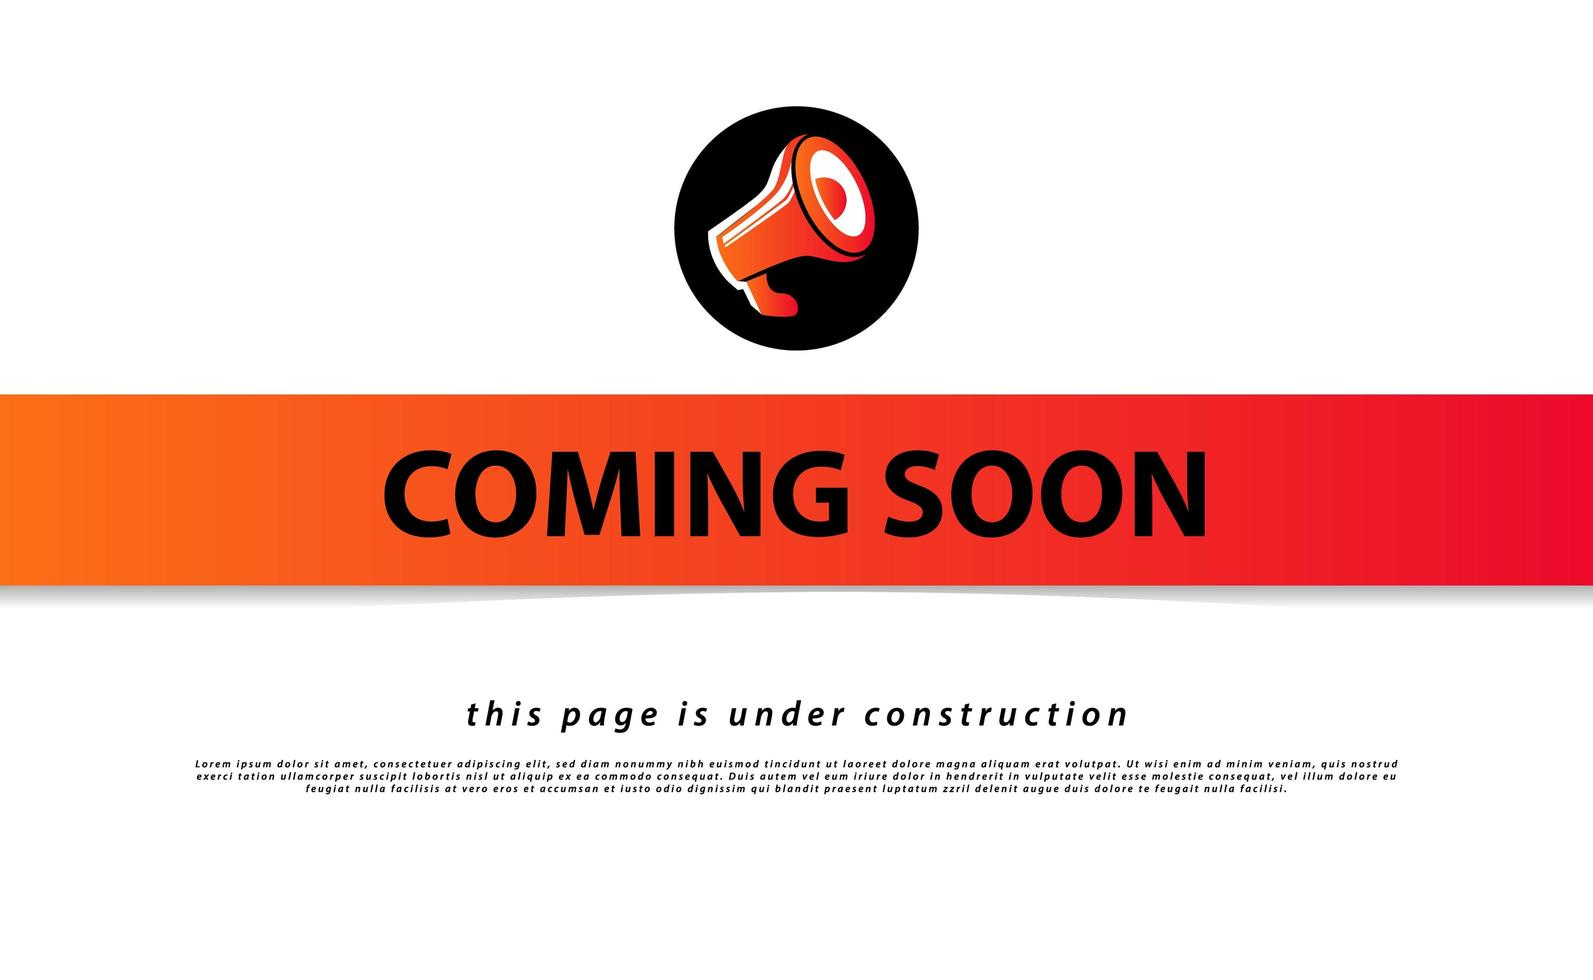 Coming soon and under construction landing page design vector